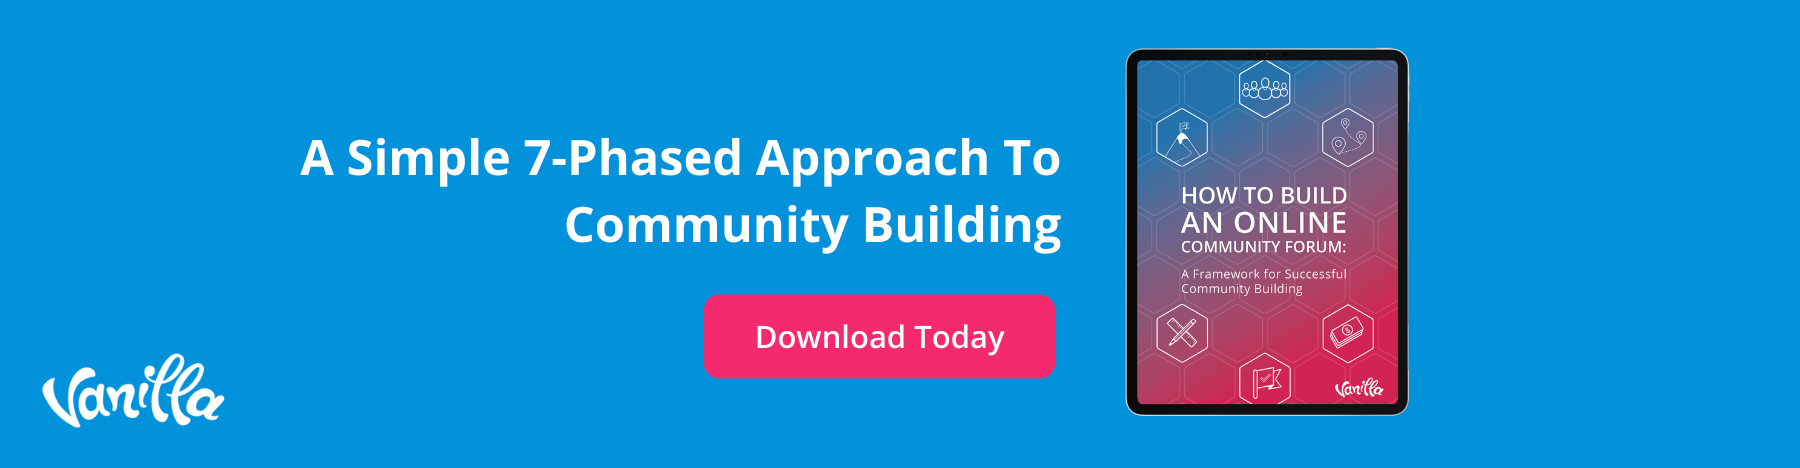 A Simple 7 Phased Approach To Community Building